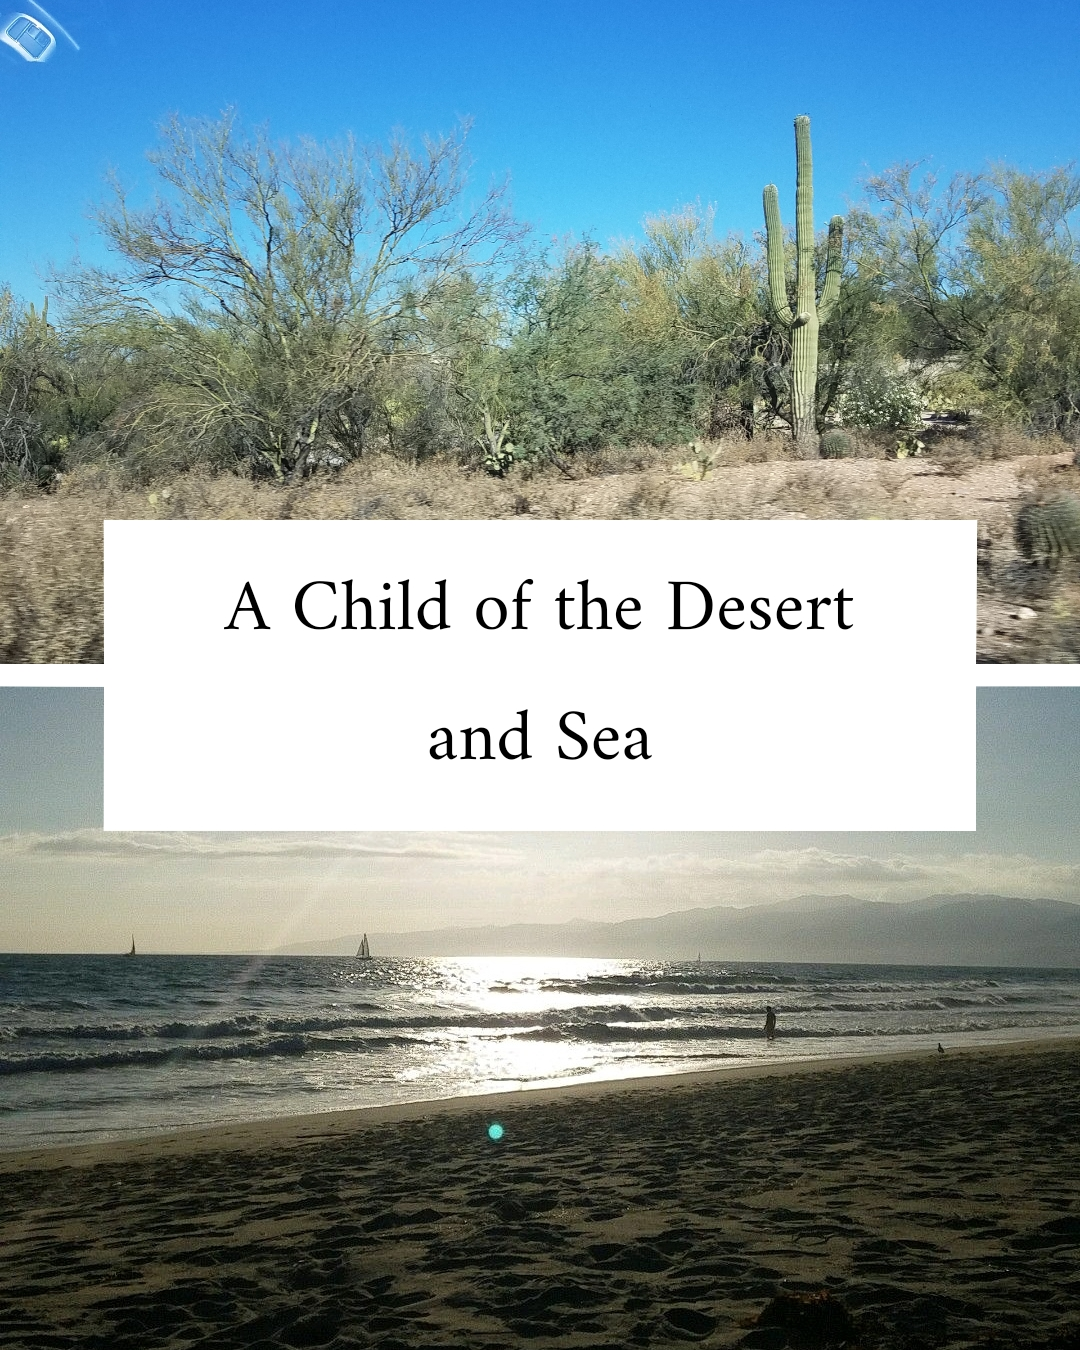 """two images stacked - on the top is a picture of the desert. A saguaro cactus with rough brush around it. On the bottom is a beach at sunset, a boat silhouetted in the distance, the sun shining off the water, in between is a text box that reads """"A Child of the Desert and Sea"""""""